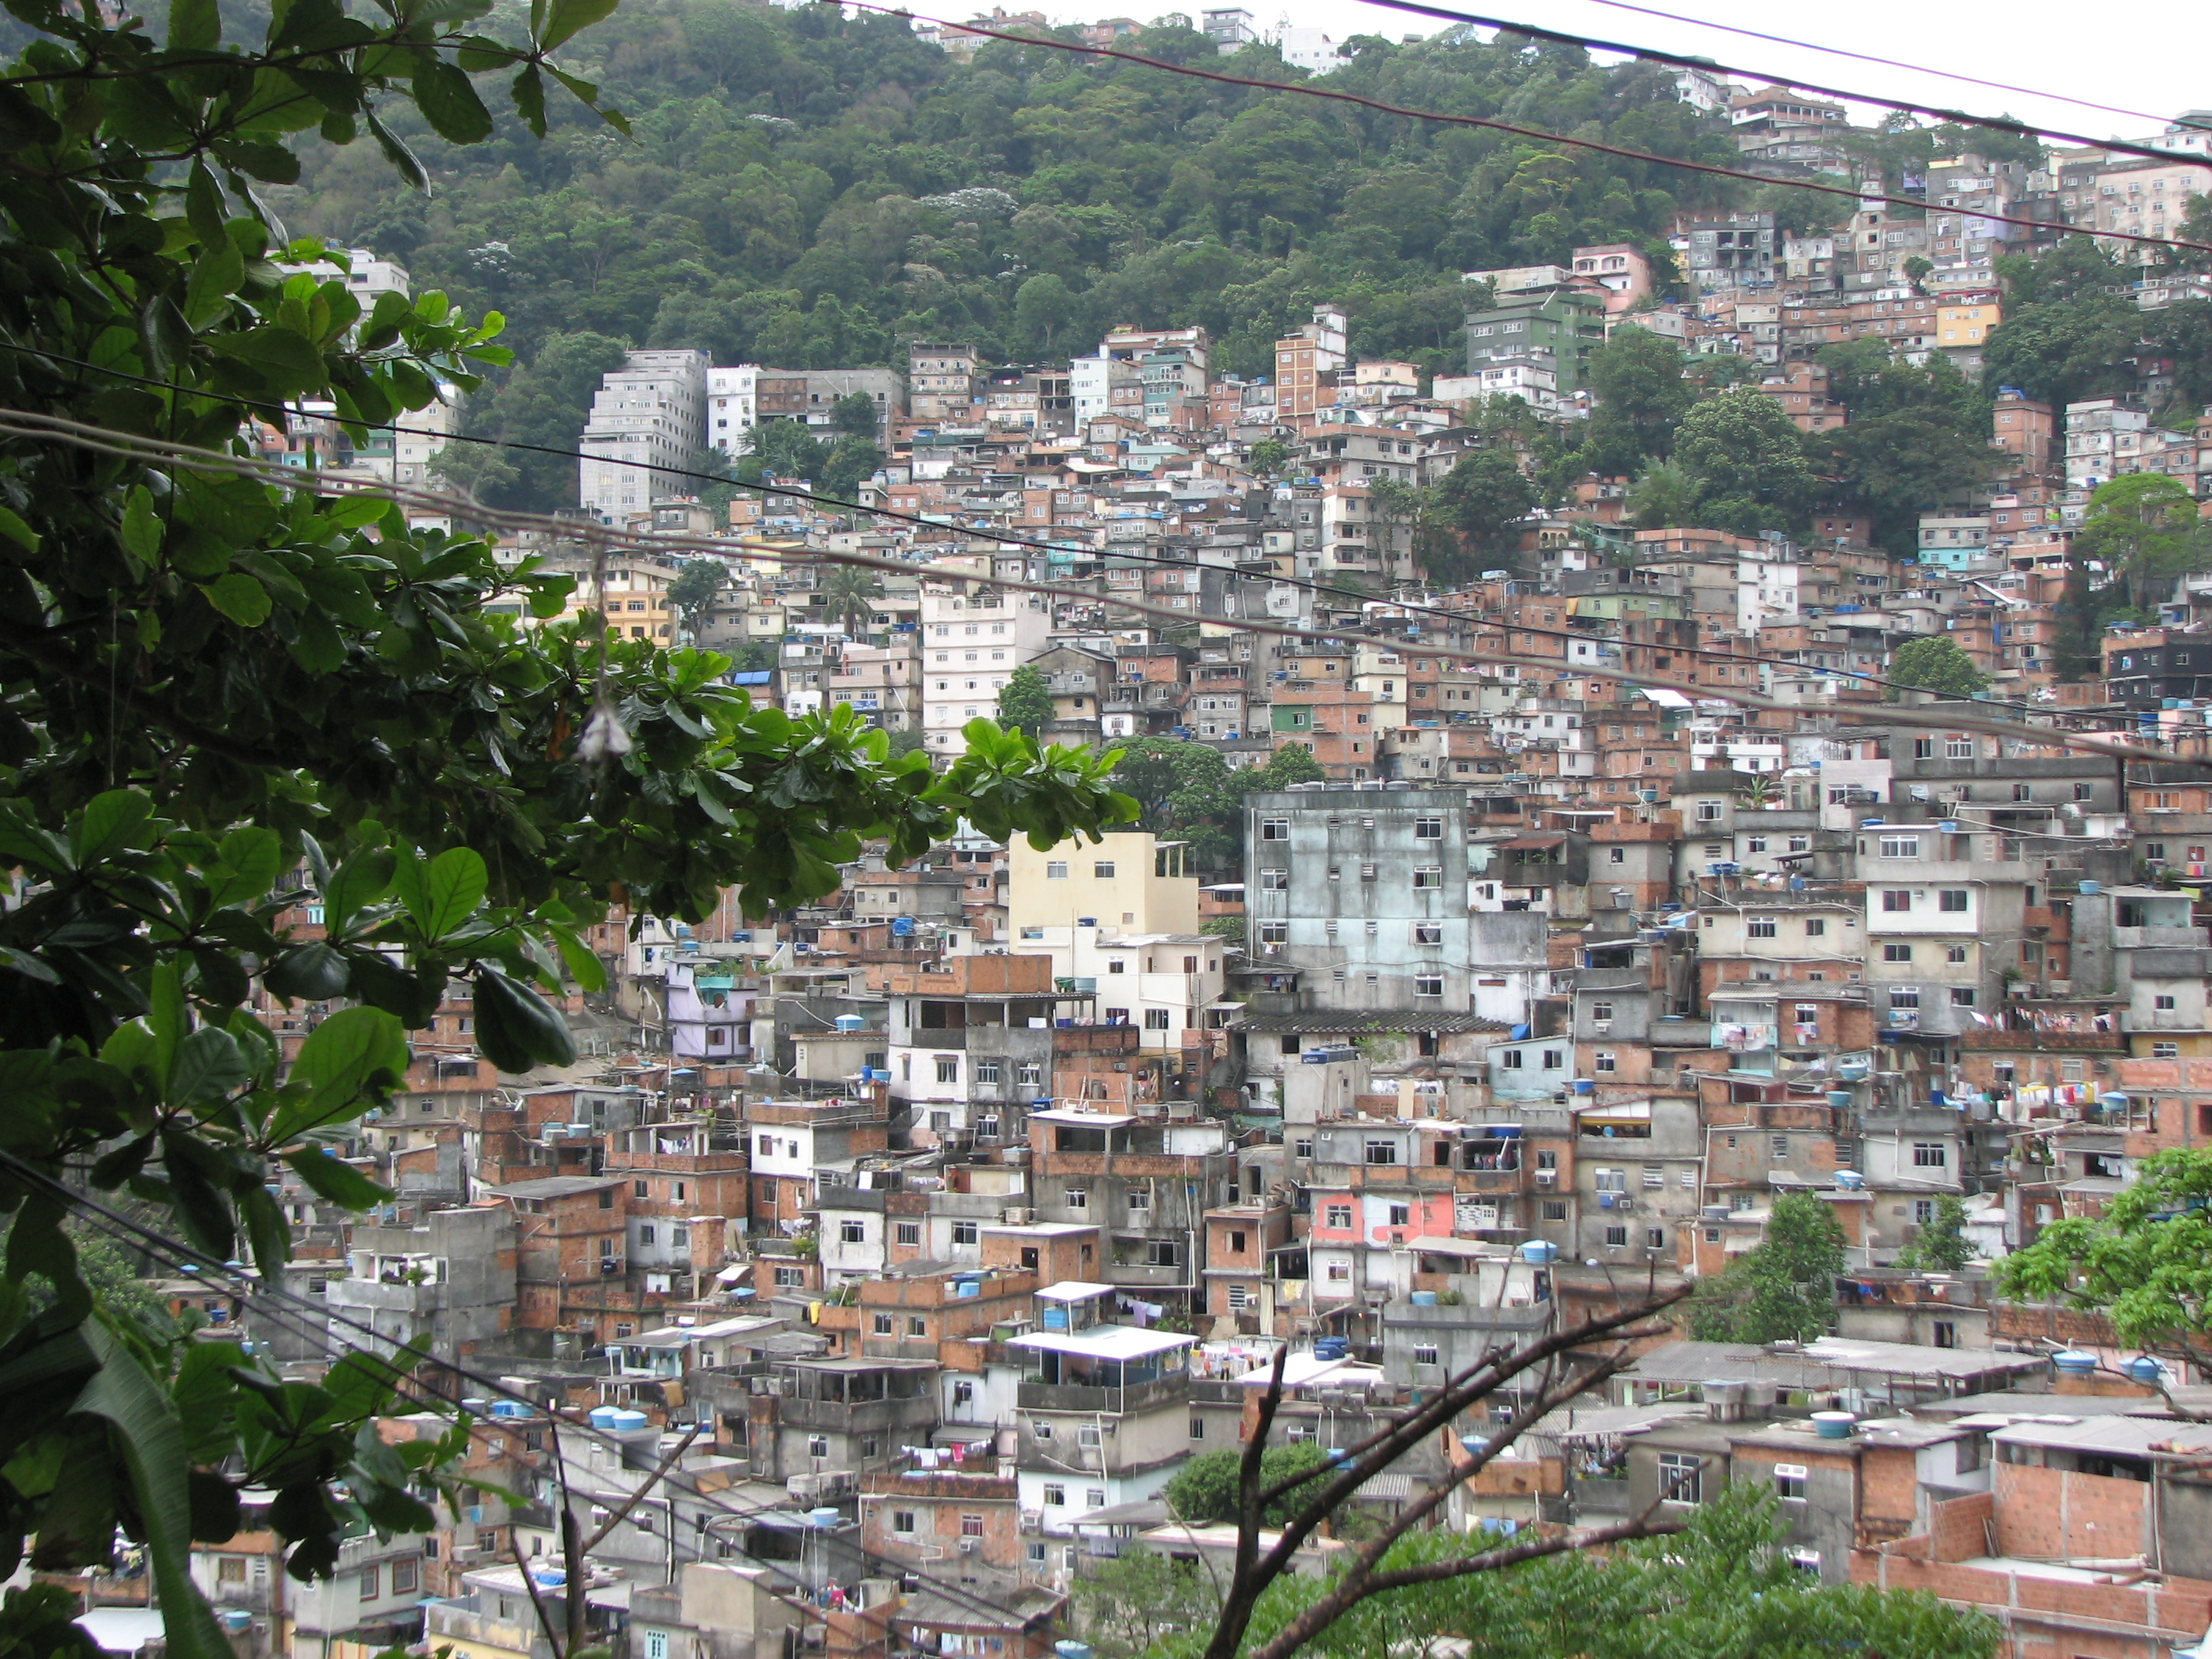 <p>Crowded settlements in Brazil. Flickr/WRI</p>